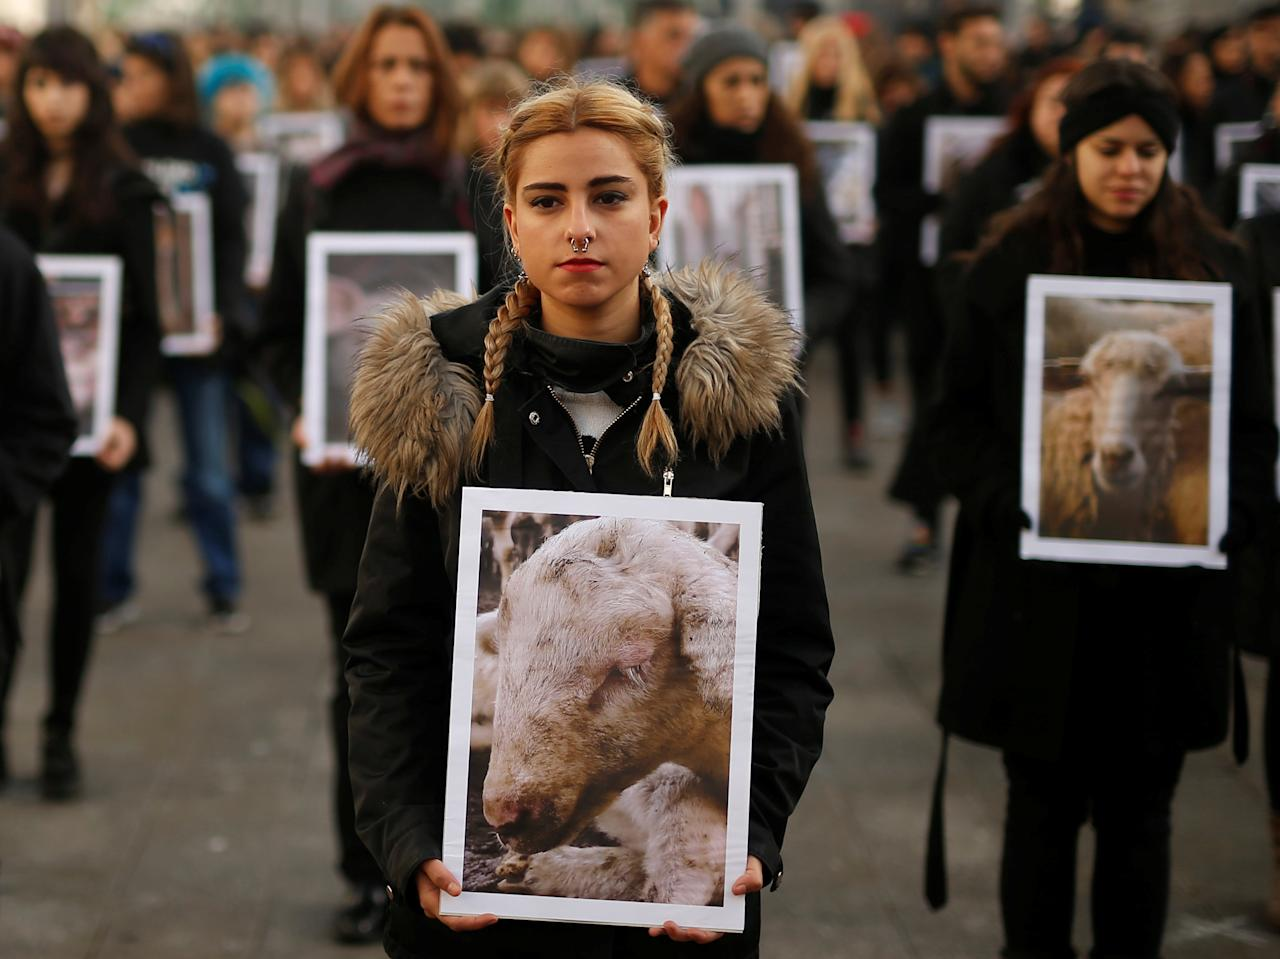 REFILE - ADDING RESTRICTION Animal rights activists from Igualdad Animal (Animal Equality) hold up pictures of animals they say are mistreated, during a demonstration to protest treatment of animals and draw attention to International Animal Rights Day, which organisers say is celebrated alongside International Human Rights Day, in Madrid, Spain December 9, 2017. REUTERS/Javier Barbancho. NO RESALES. NO ARCHIVE.